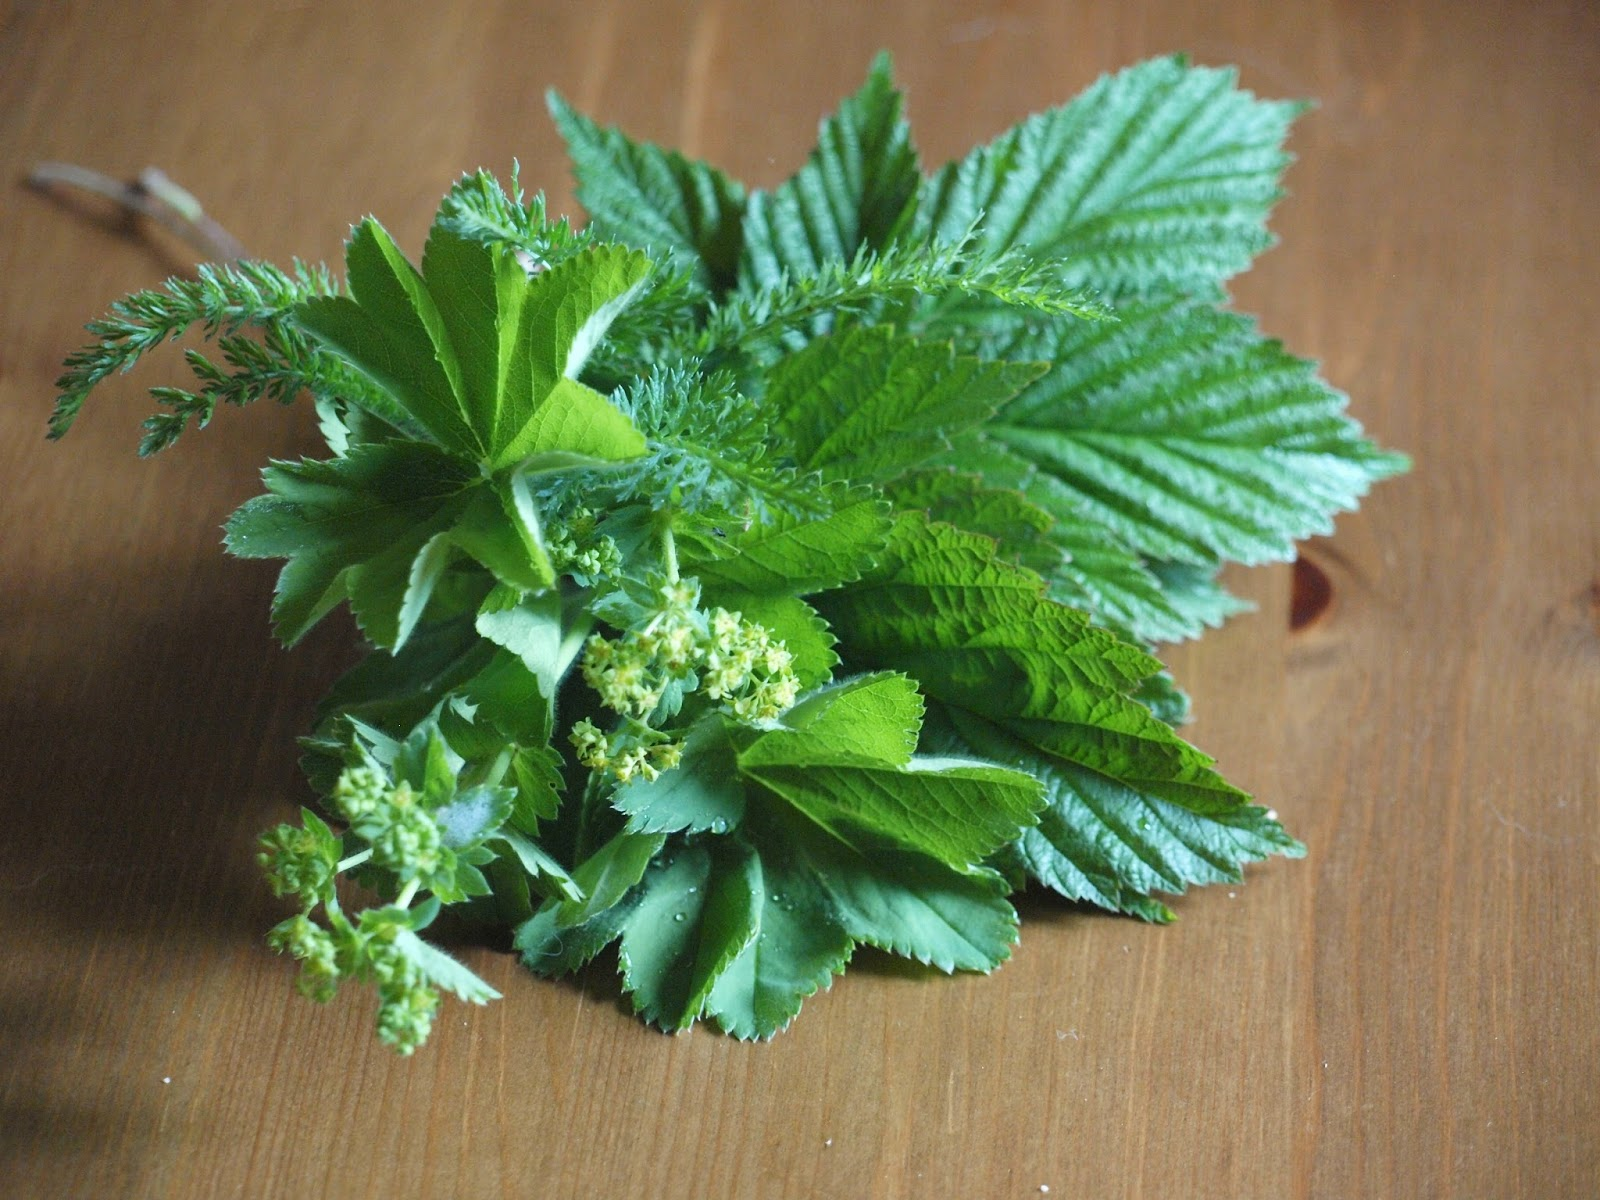 Canine herbal therapy - Luckily In Our Kennel We Have Been Using These Herbs For Preventive Measures But There Are So Many More Health Benefits And Reasons Why This Herbal Mix